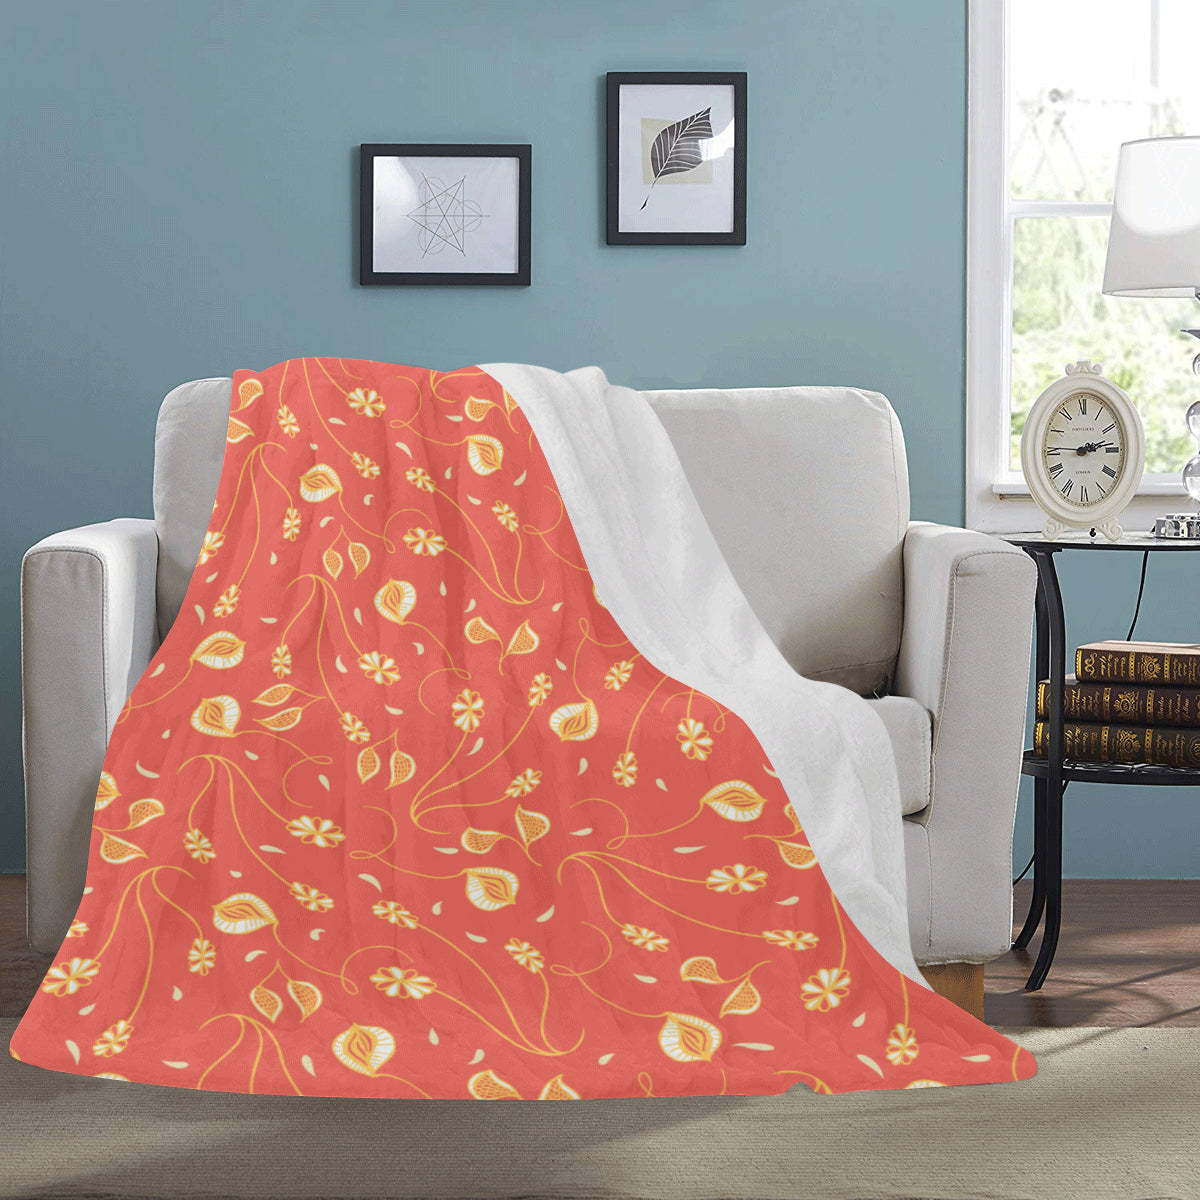 Gilded Gliders - Fleece Blanket-Geckojoy